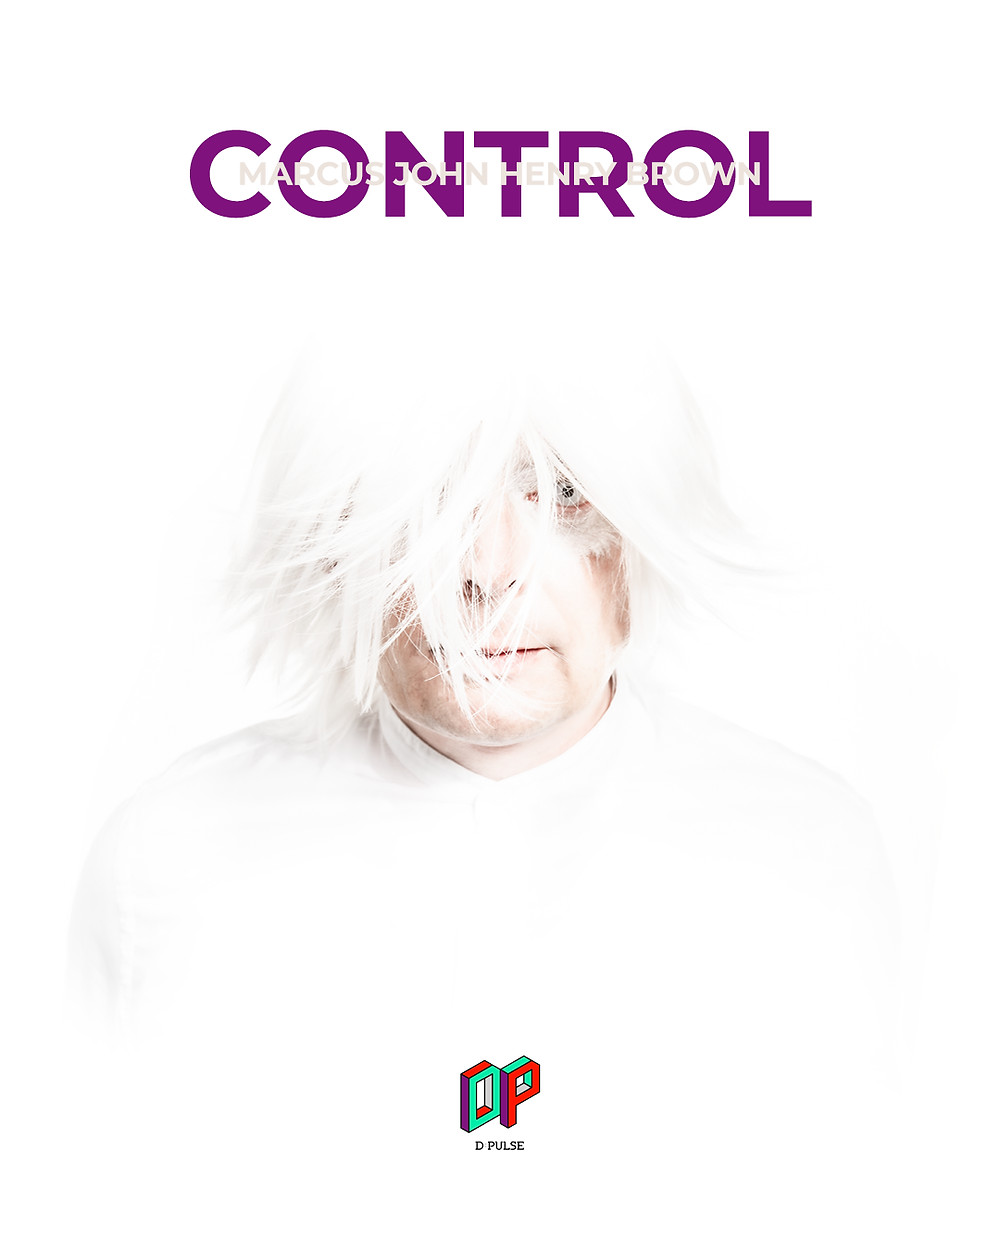 CONTROL by Marcus John Henry Brown at D:PULSE